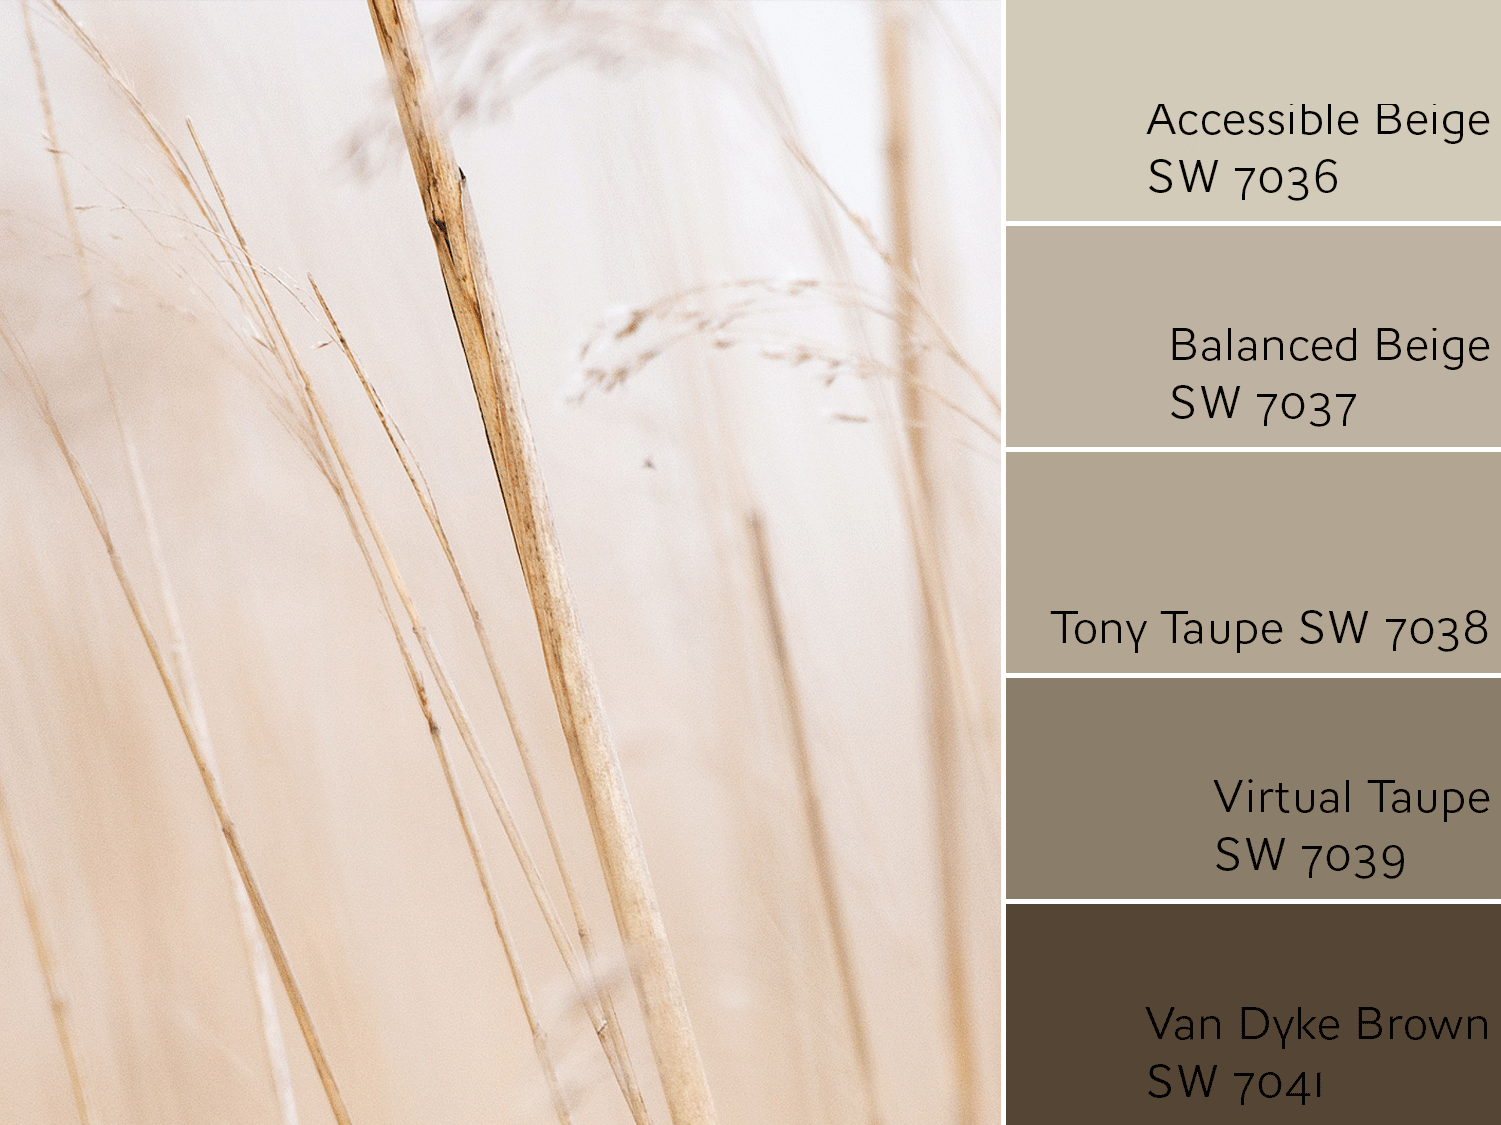 Accessible Beige Color Review by Laura Rugh